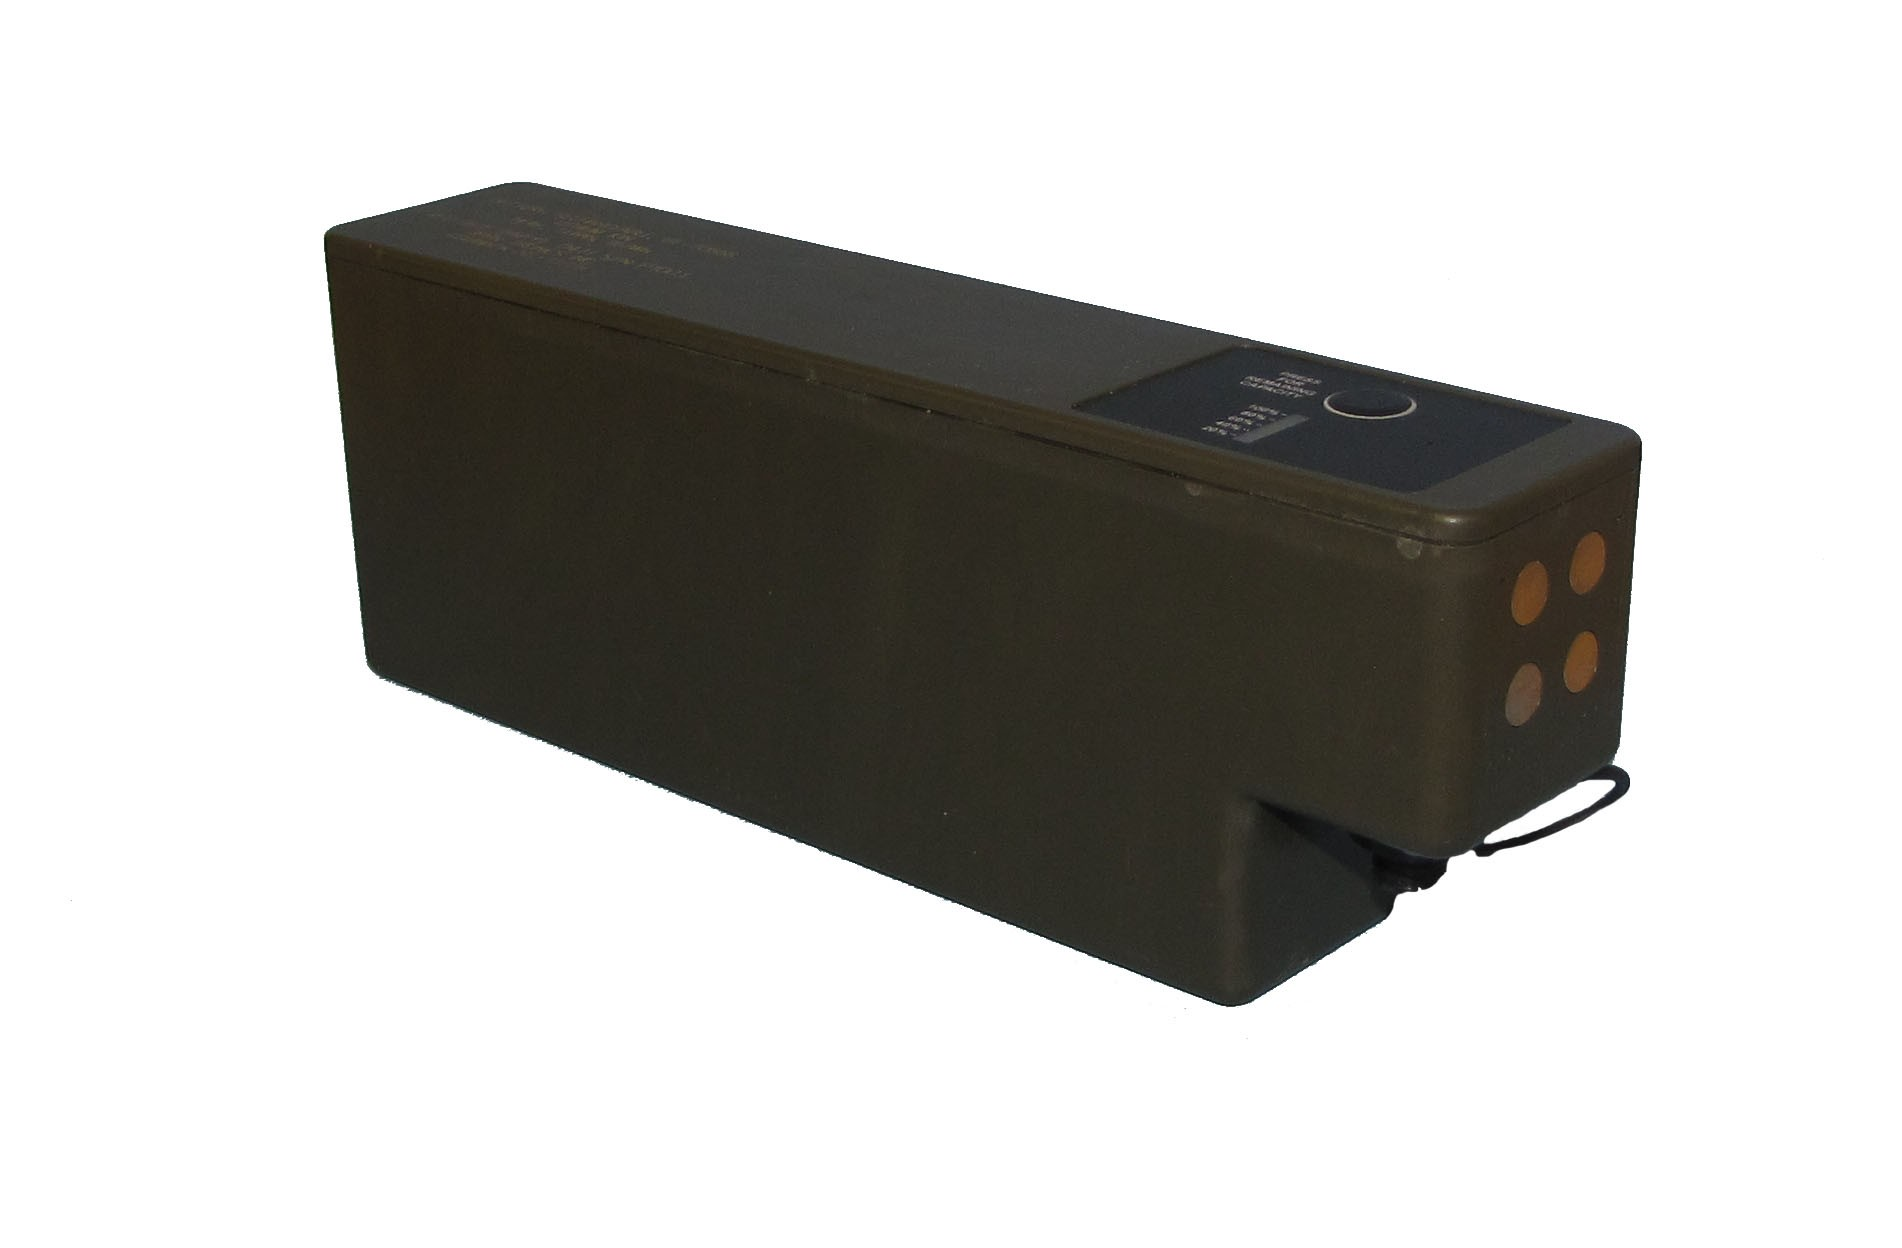 Battery: BT-70868BK (LI-145)